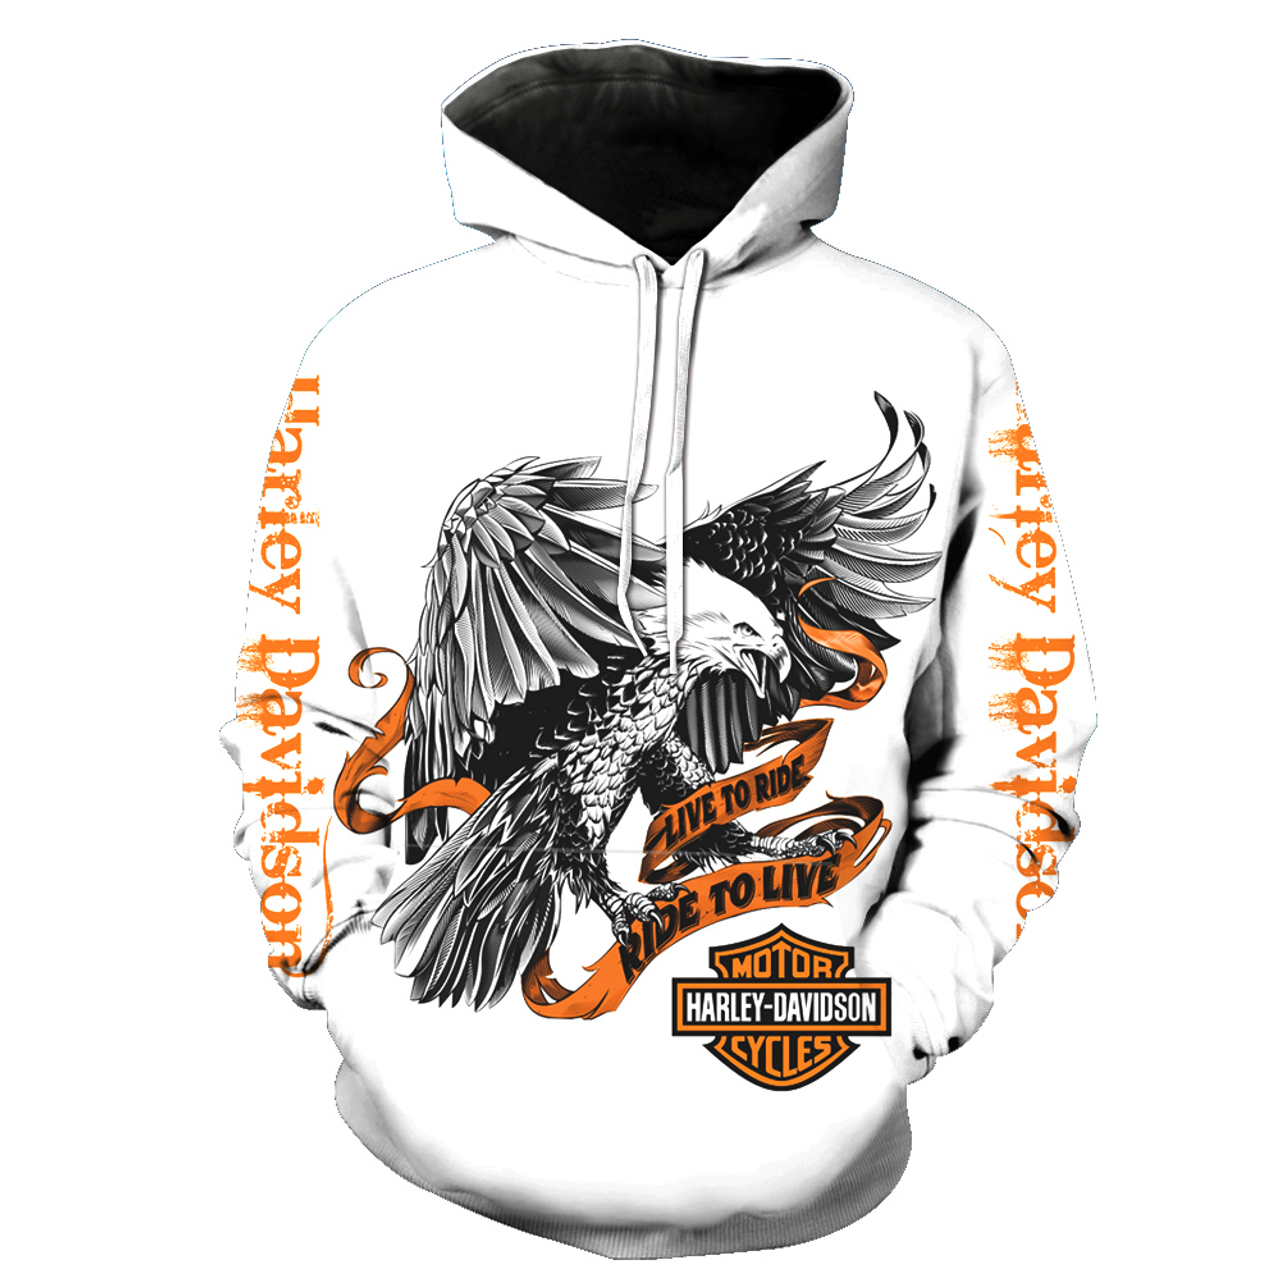 **(NEW-MENS & WOMENS-OFFICIAL-3-D-GRAPHIC-PRINTED-HARLEY-HOODIES/HARLEY-DAVIDSON-EAGLE & LIVE-TO-RIDE/RIDE-TO-LIVE & HARLEY-EMBLEM,NICE-DETAILED-CUSTOM-GRAPHIC-PRINTED/PREMIUM-FULL-DOUBLE-SIDED-PULLOVER-HOODIES)**